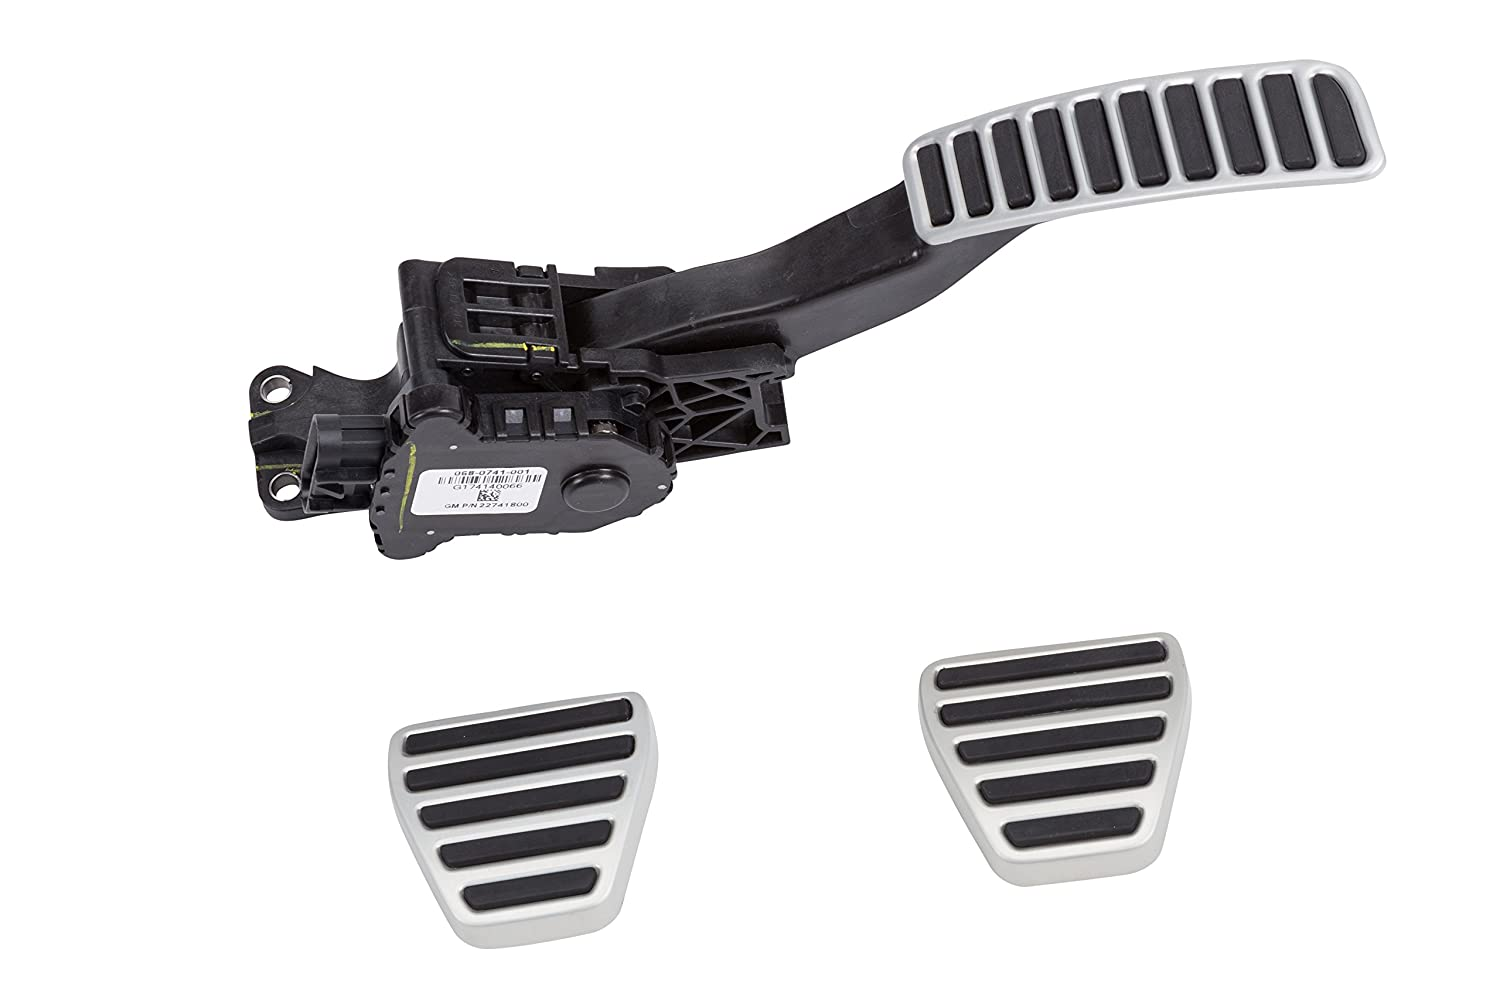 GM Accessories 22826305 Manual Transmission Pedal Cover Package in Stainless Steel and Black General Motors